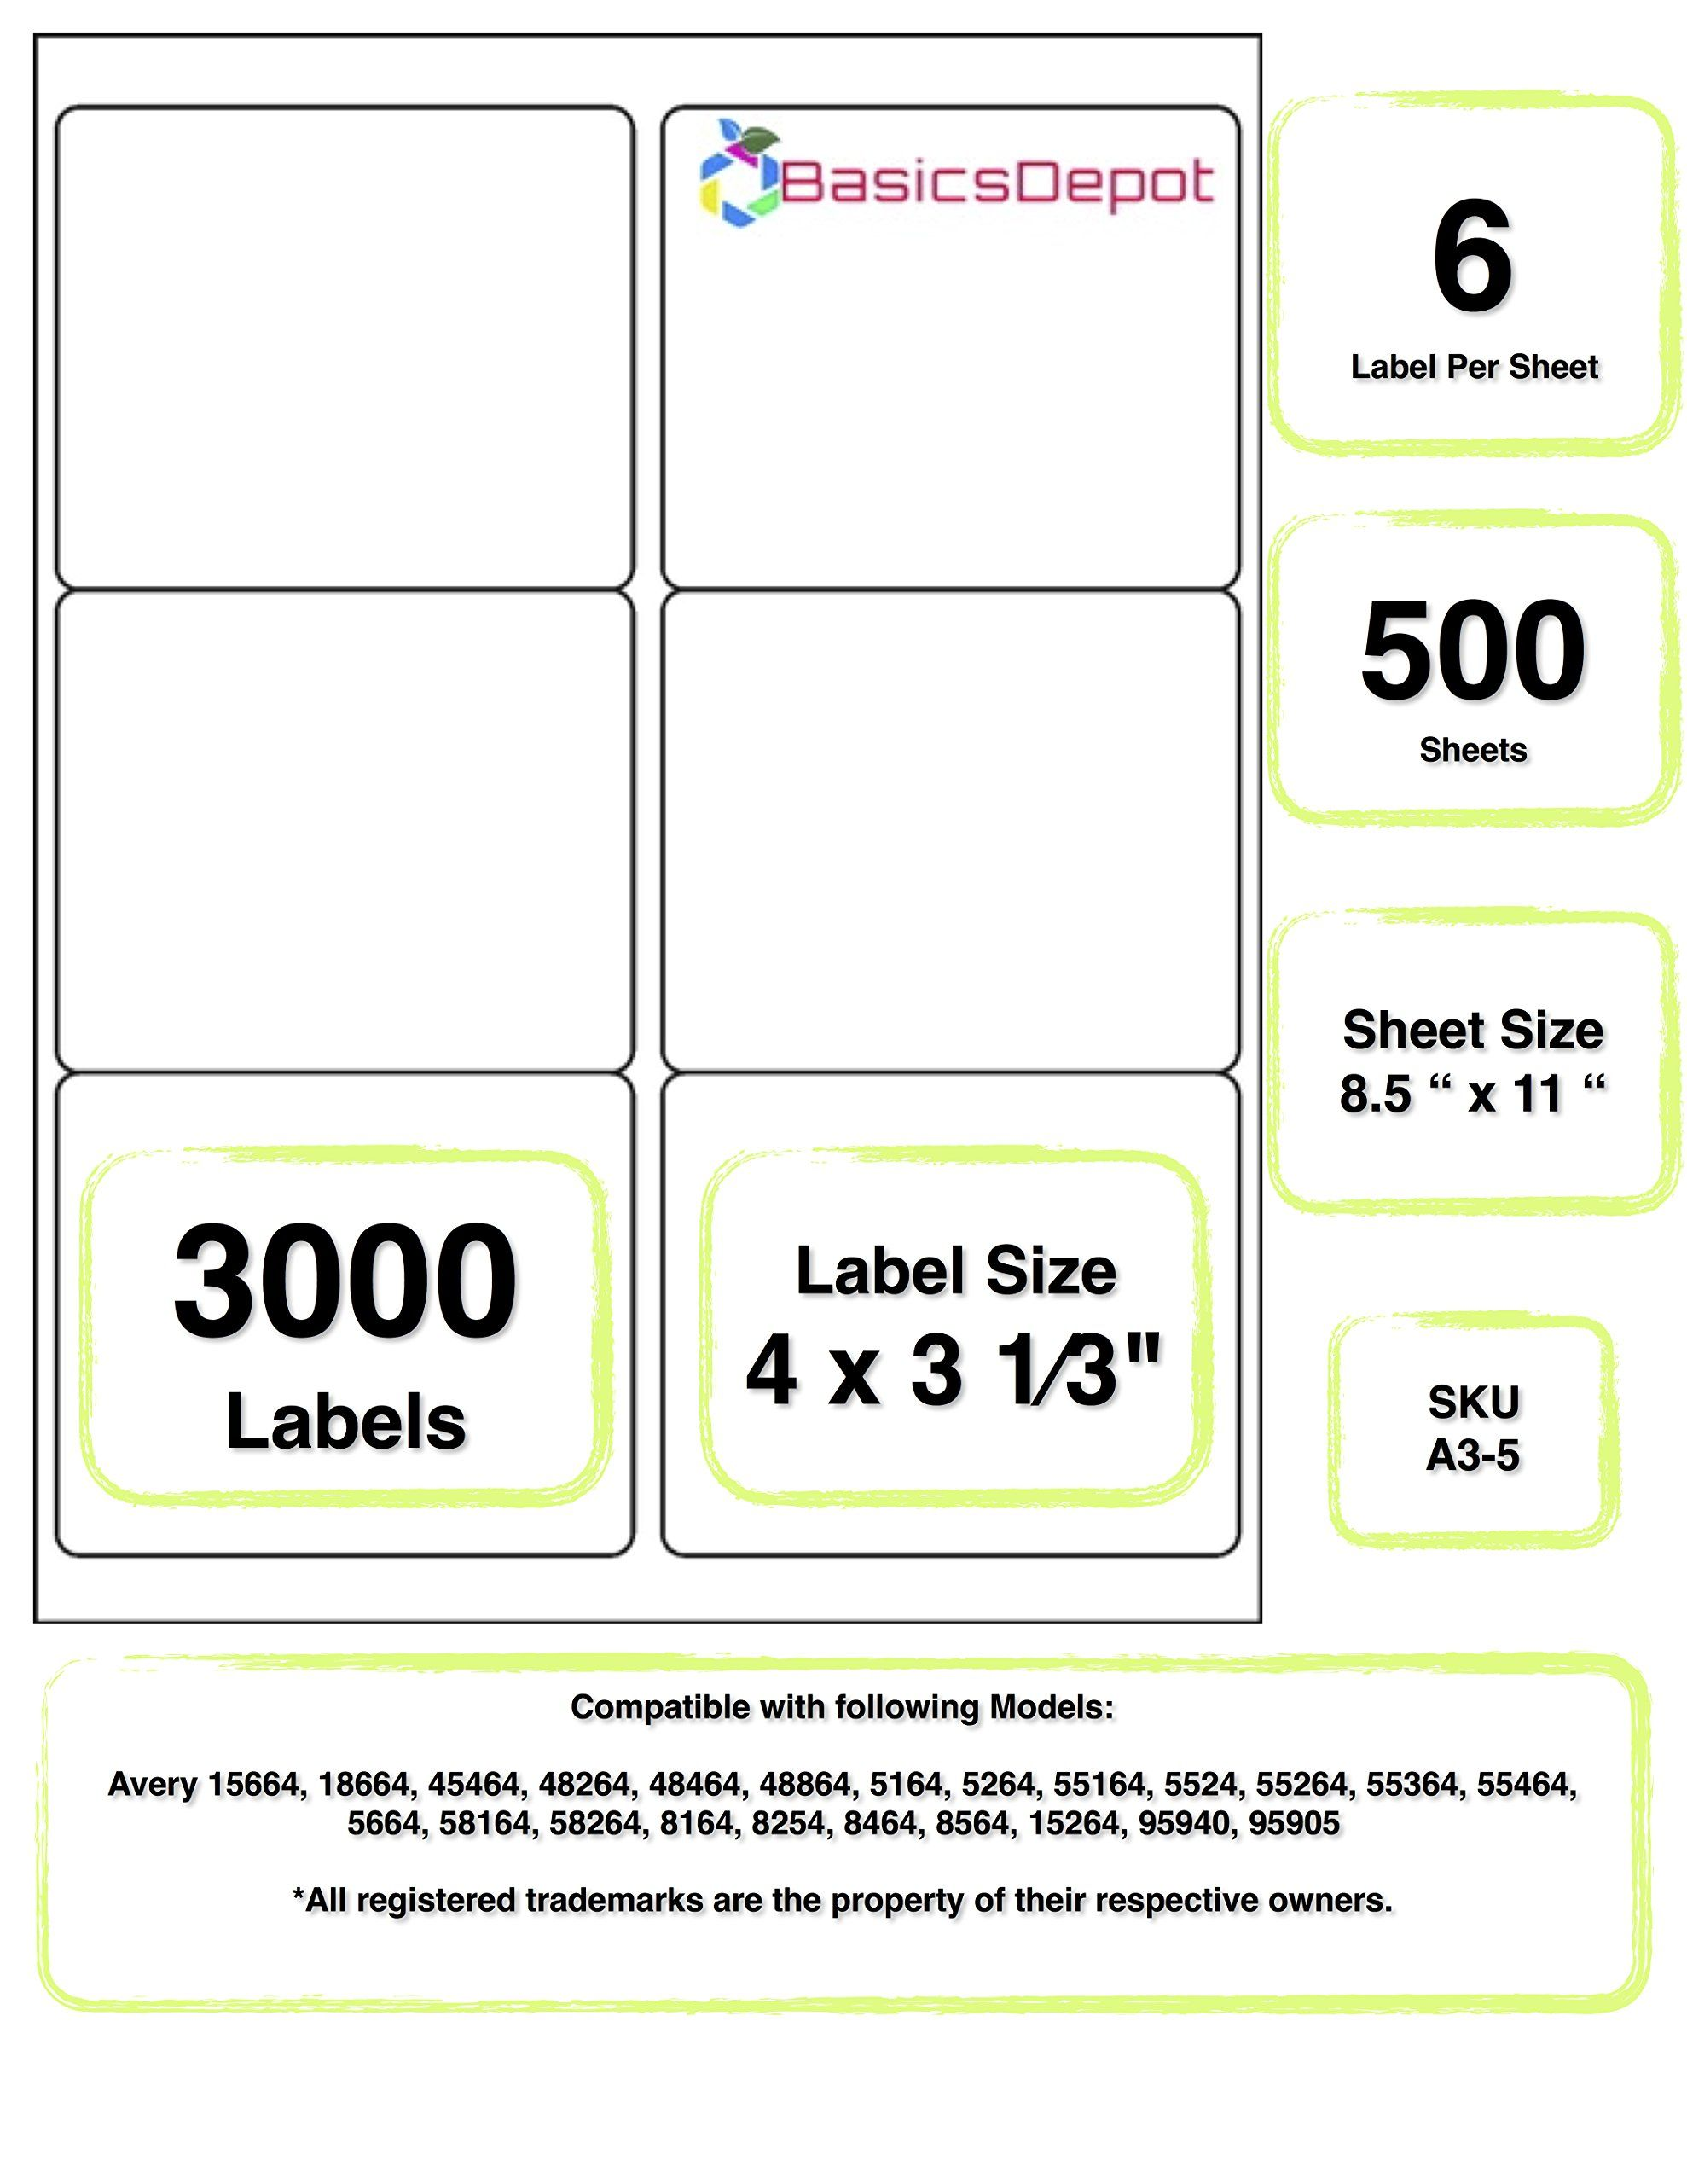 Avery 5164 Compatible 4 X 3 33 Inch Label Same Size As Avery 5164 6 Label Per Sheet 500 Lip Balm Labels Template Label Templates Printable Label Templates